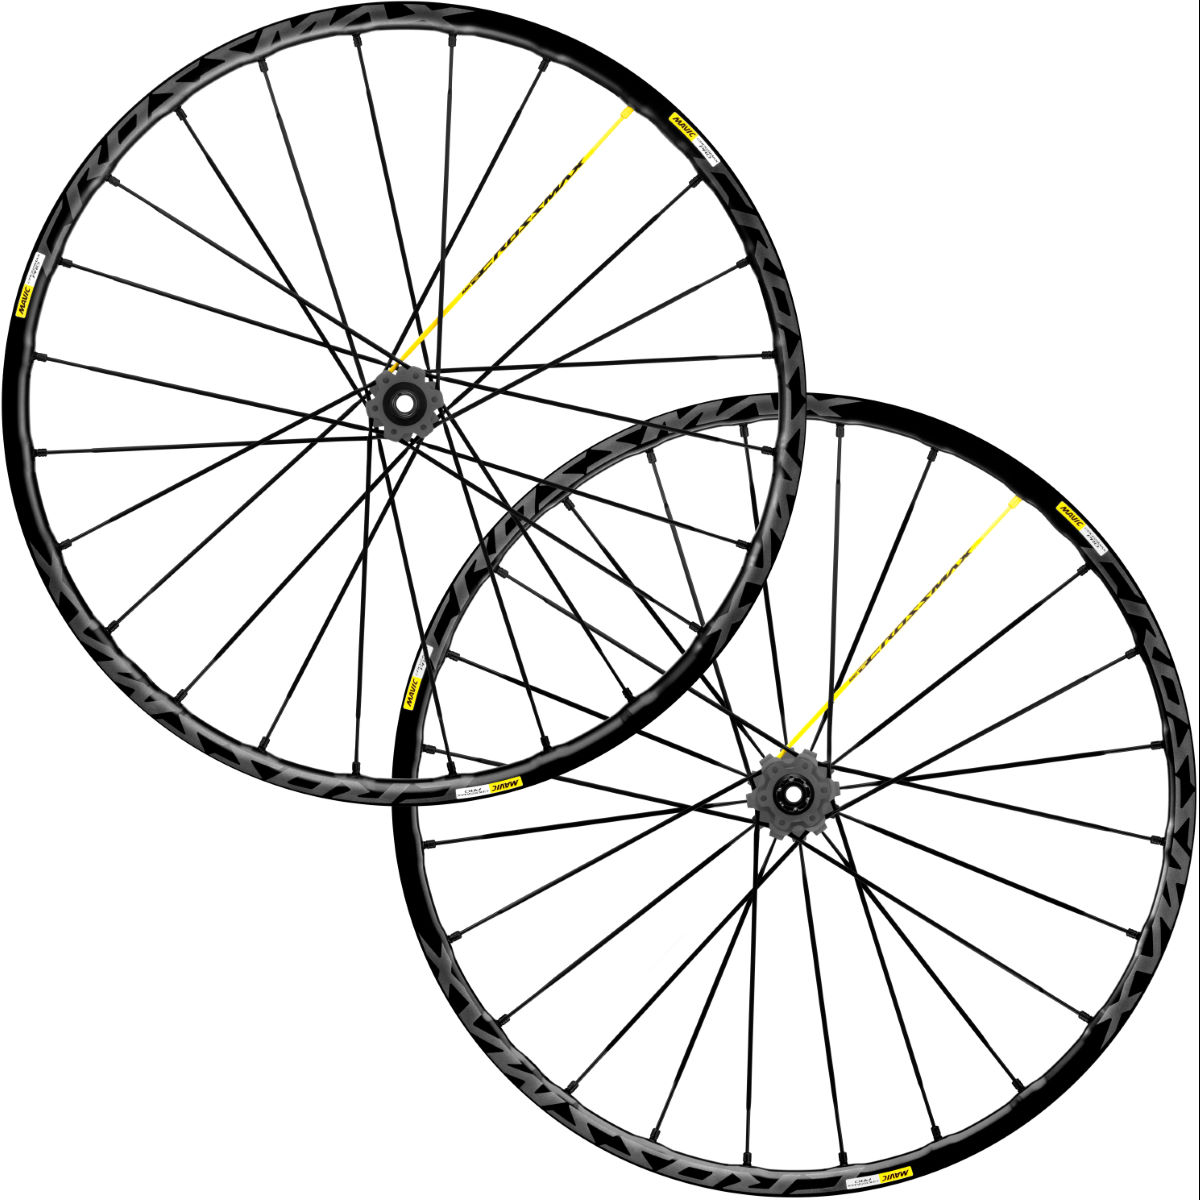 Mavic Crossmax Pro MTB wheelset (XD) - Wheel sets